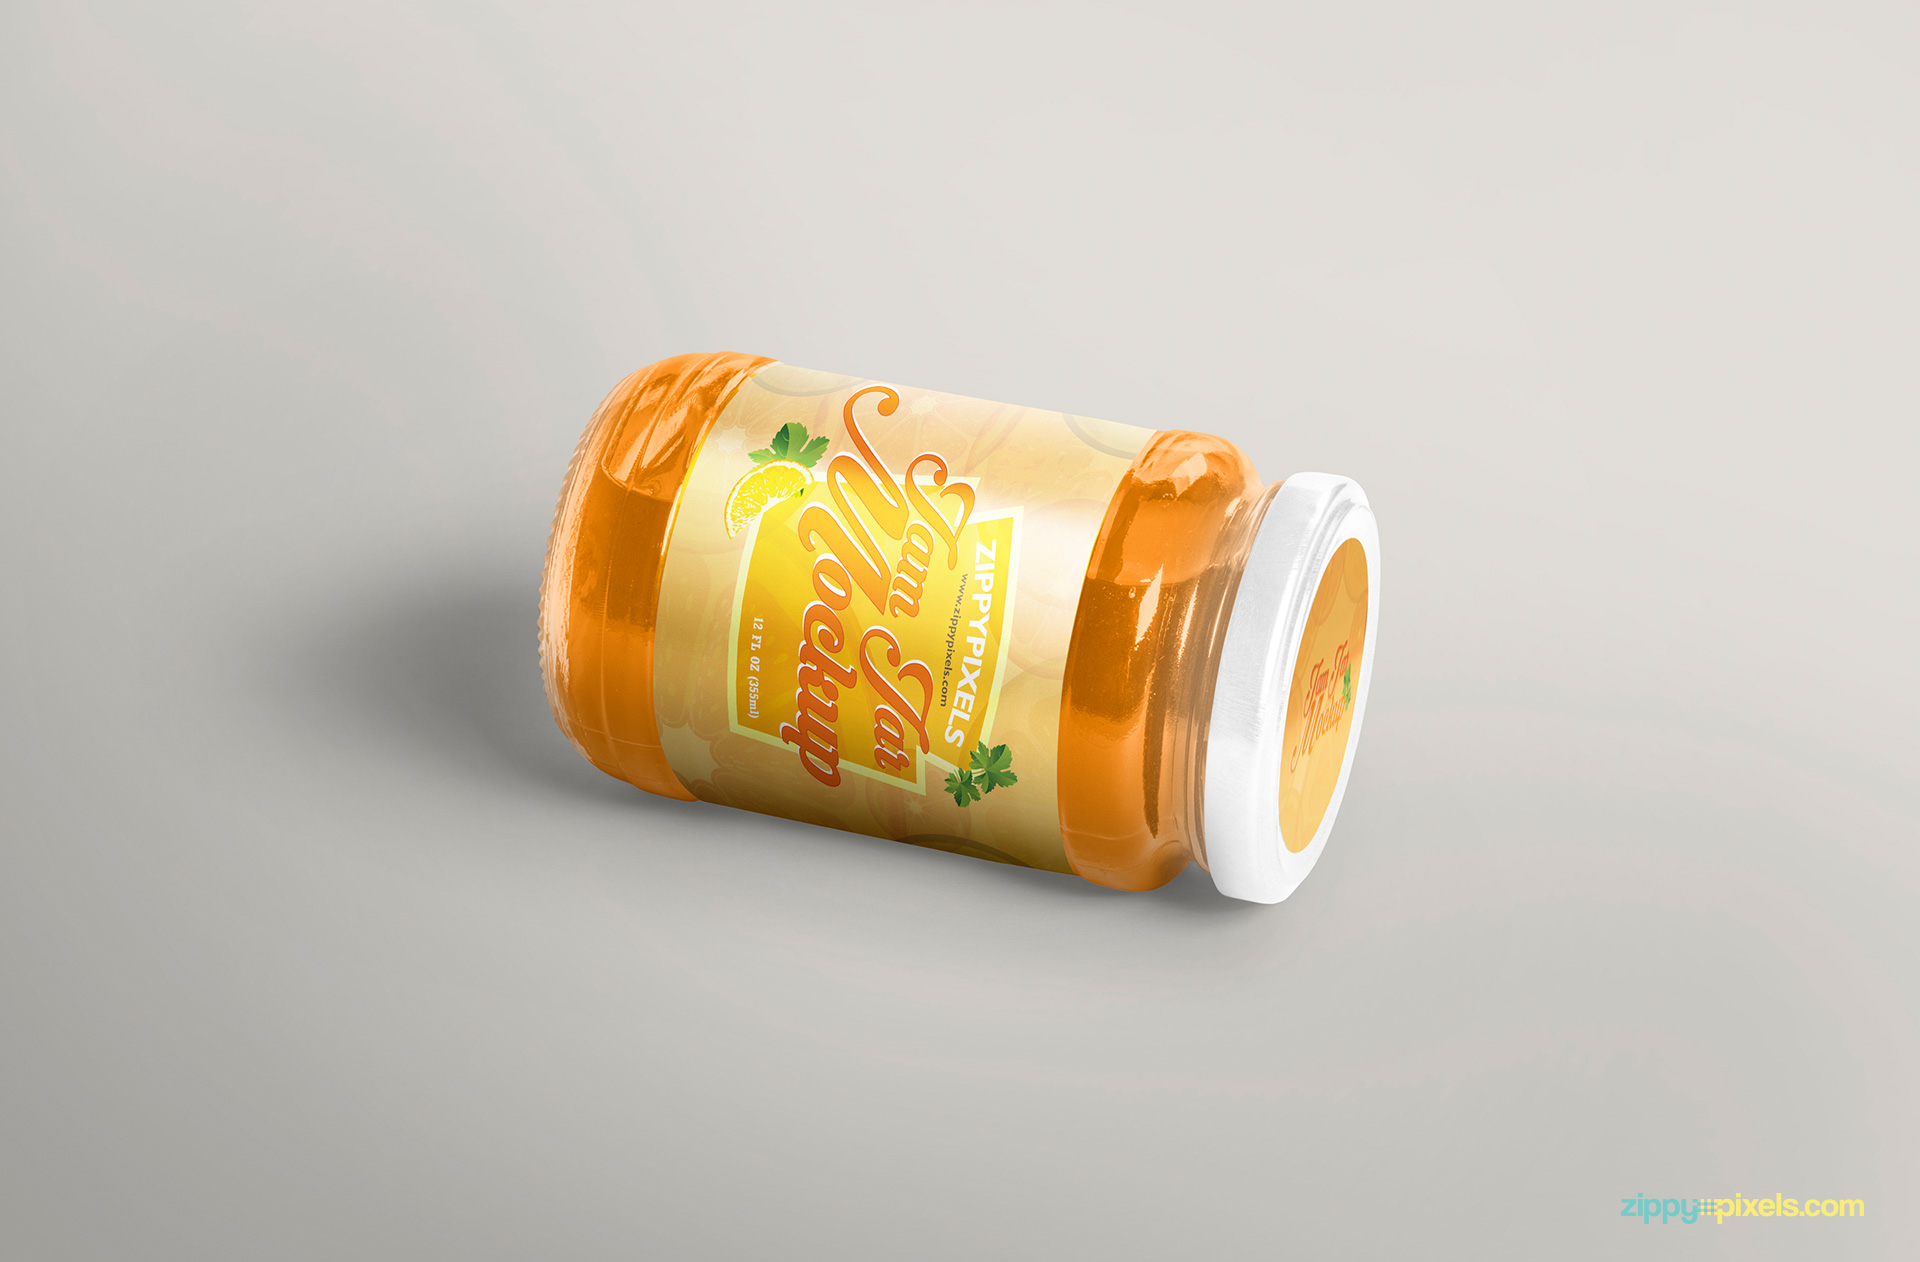 jam-jar-mockup-perspective-view